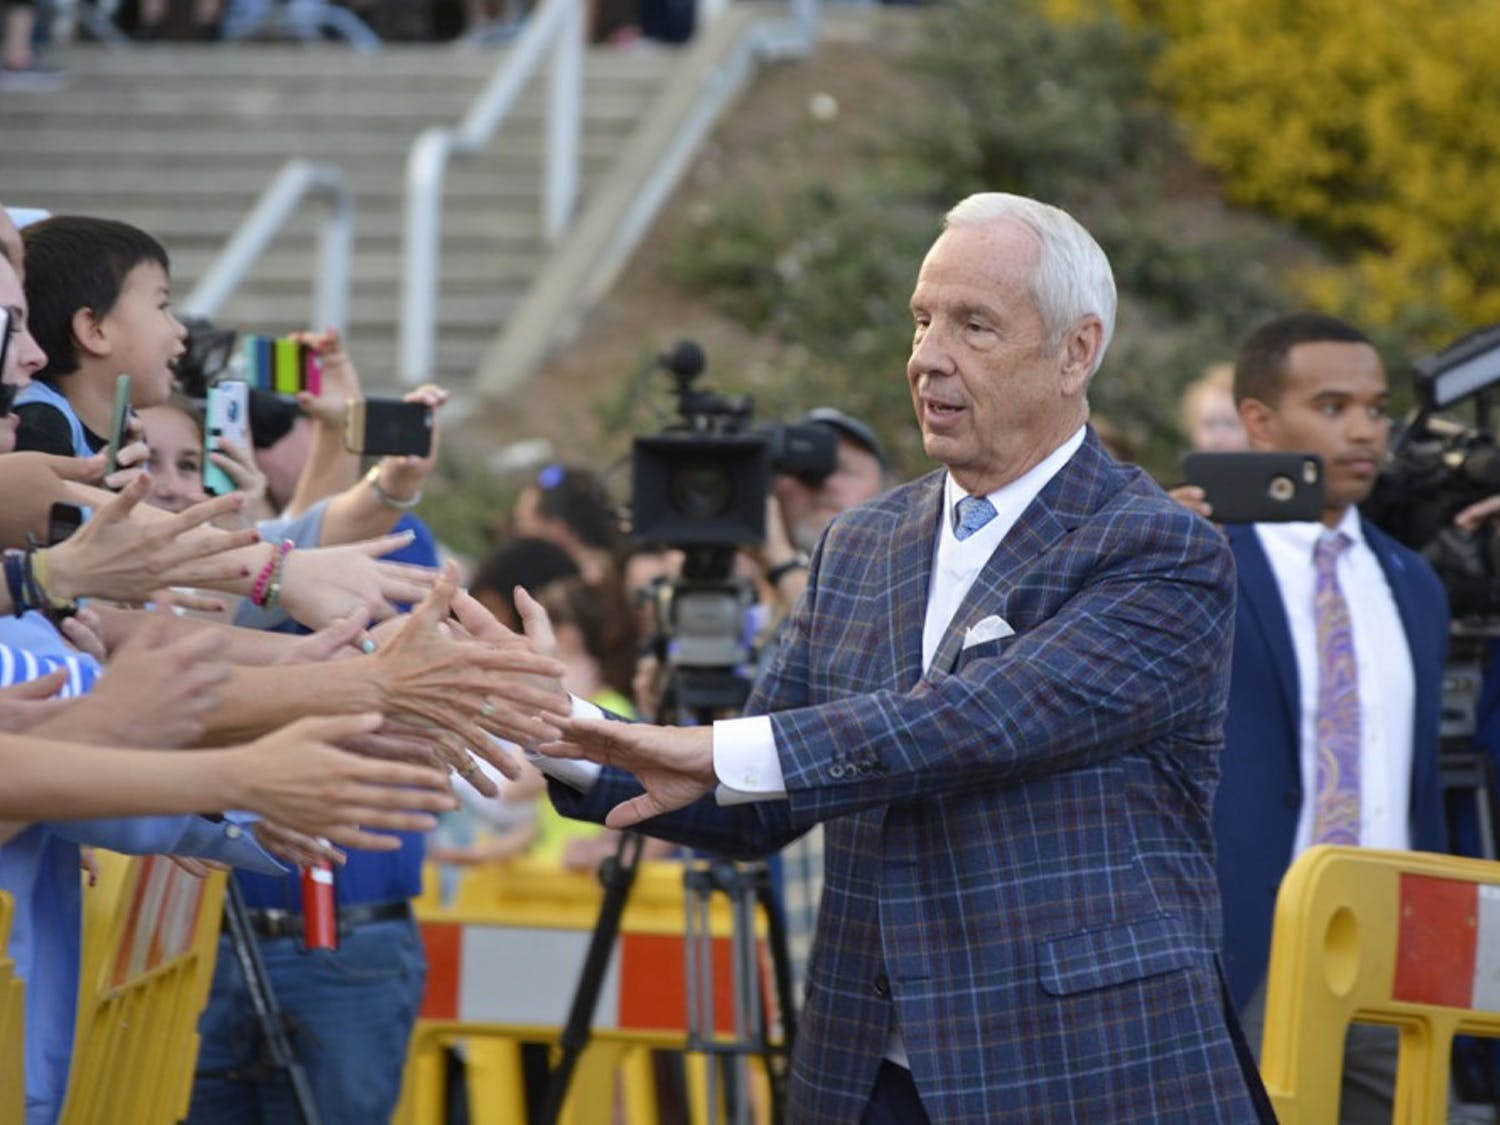 Coach Roy Williams greets fans at the UNC Men's Basketball send-off for the Final Four in Phoenix. The event was held at the Dean Smith Center on Tuesday afternoon, March 28, 2017.